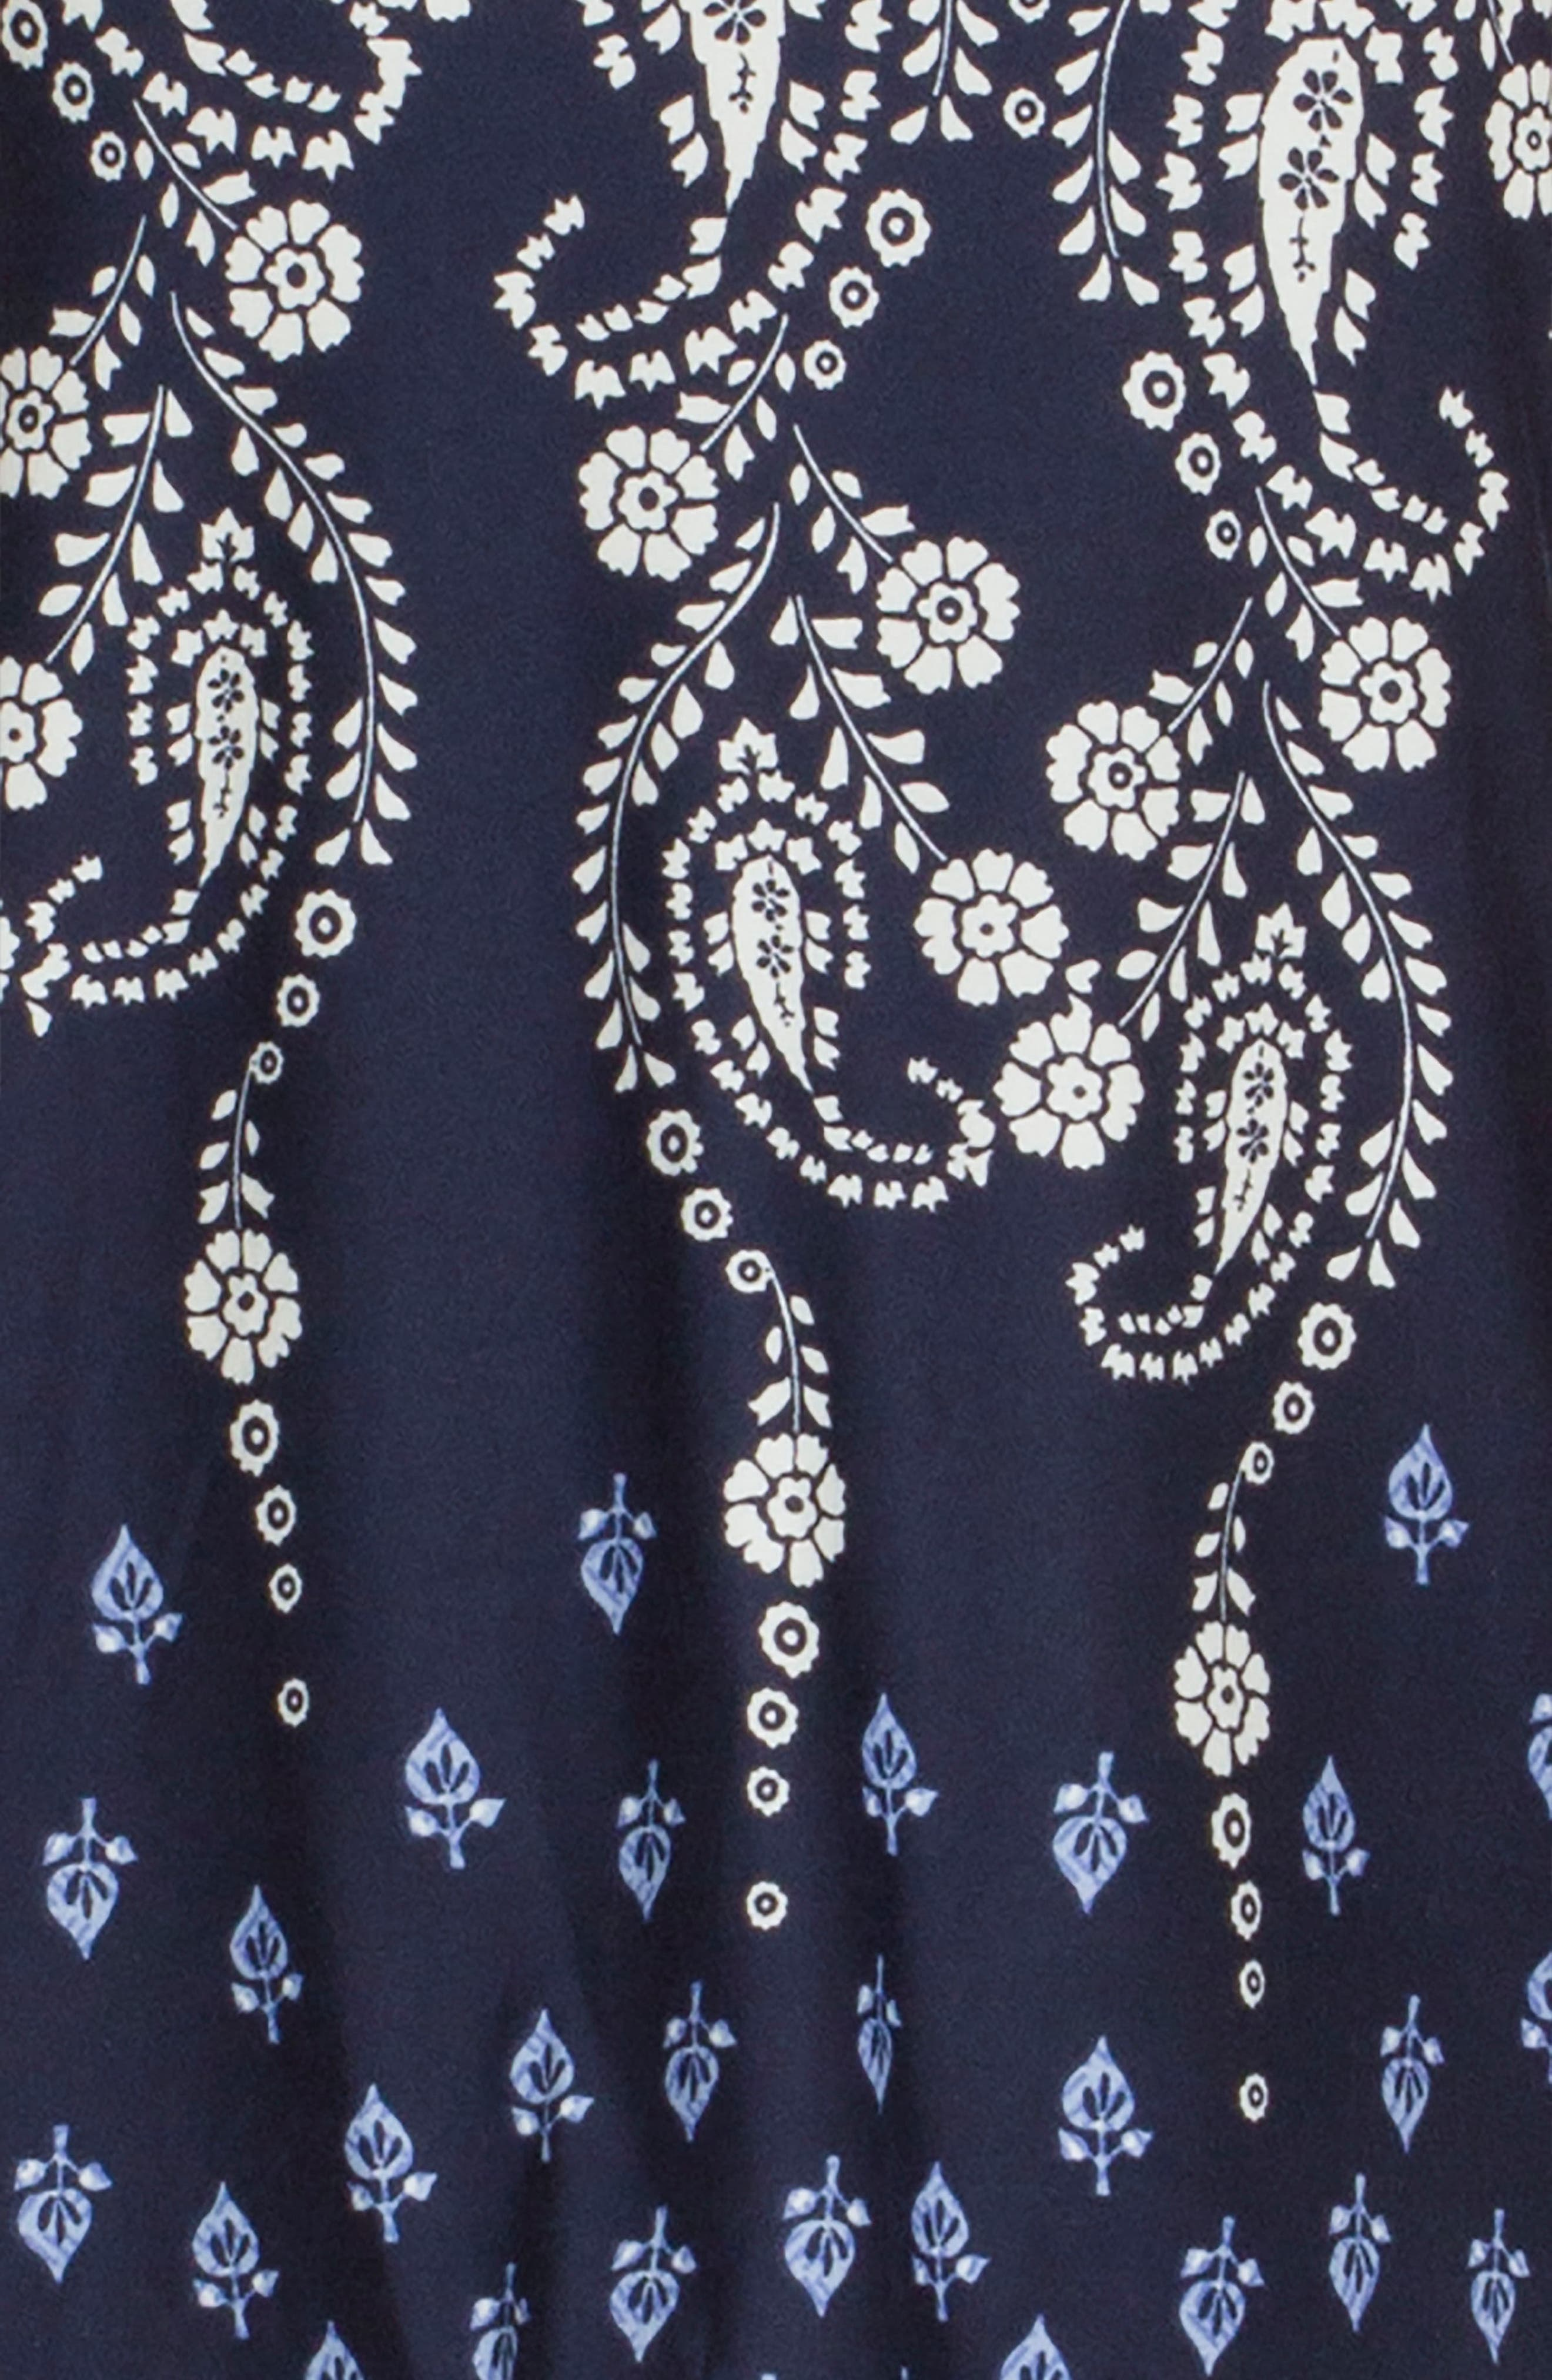 Camisole,                             Alternate thumbnail 4, color,                             NAVY/ IVORY PRINT